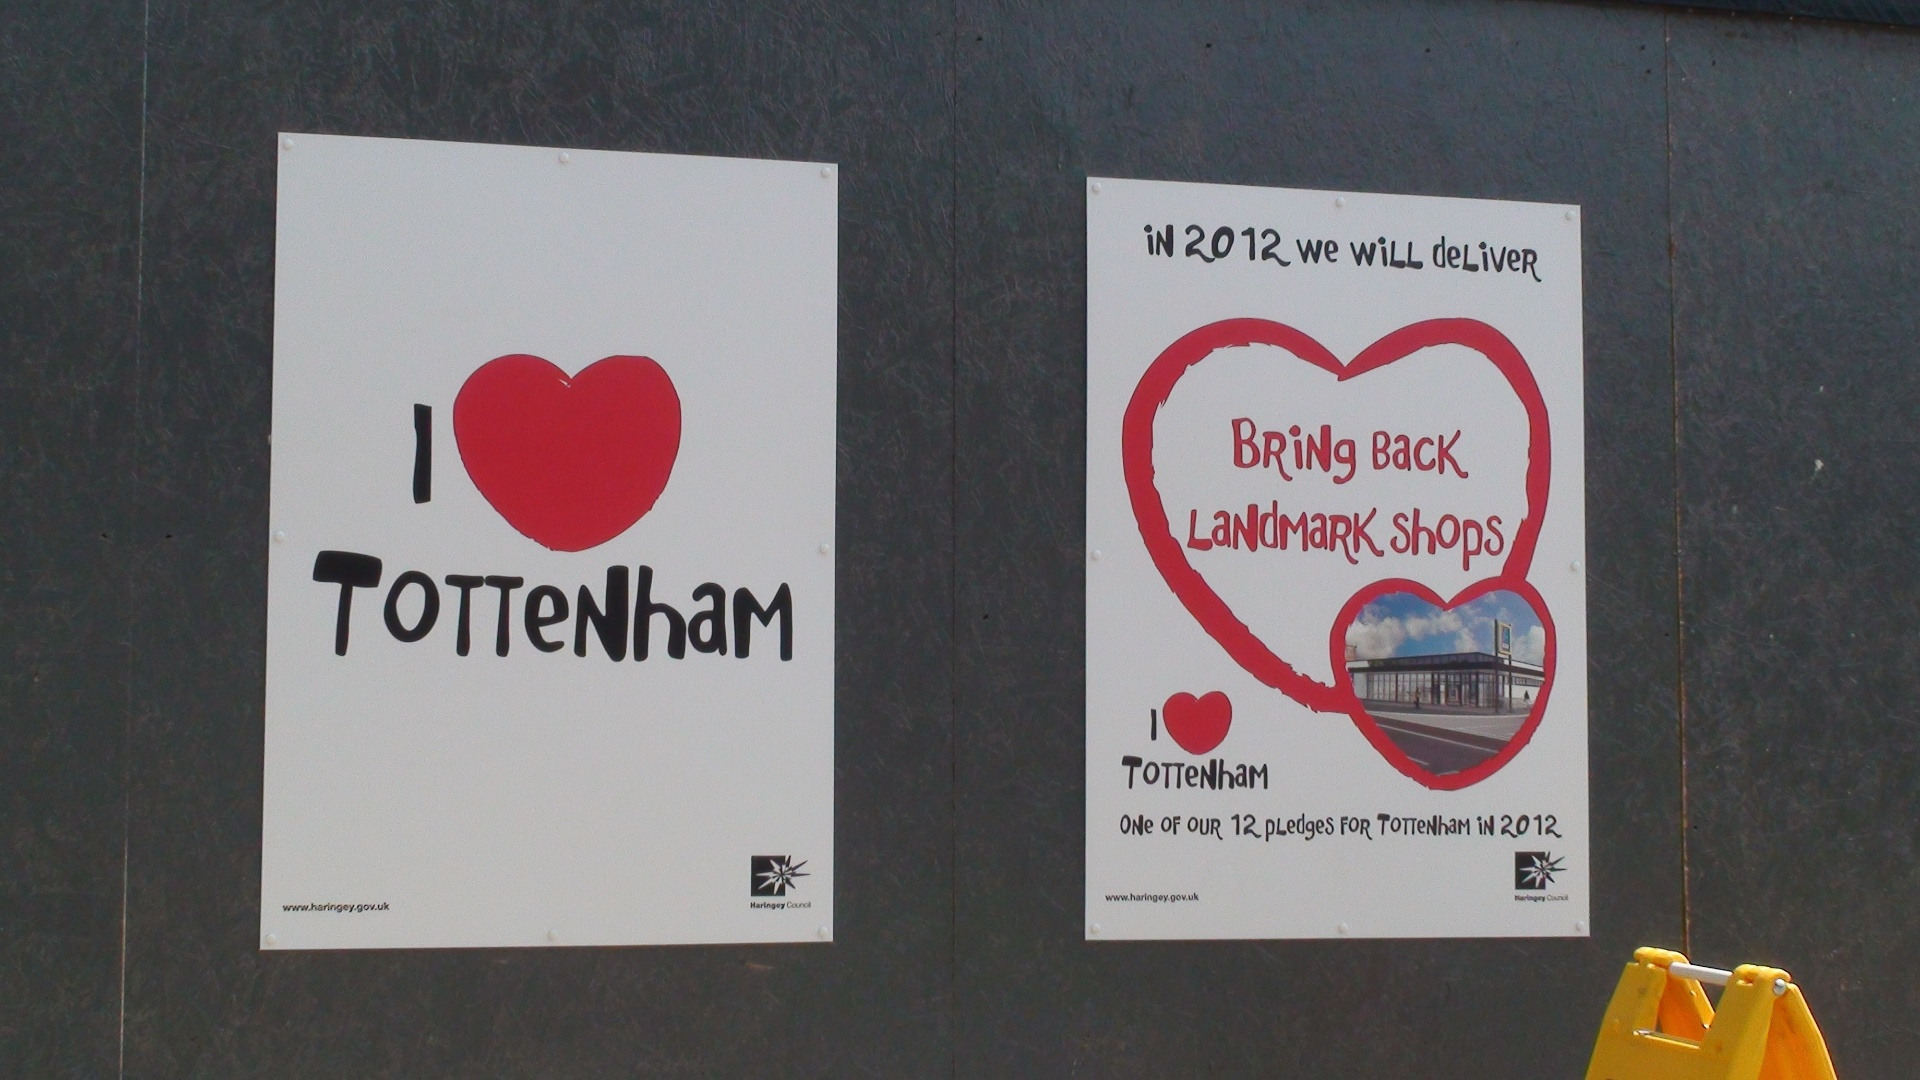 Cartaz tenta promover o amor ao bairro londrino de Tottenham (25/07/2012)